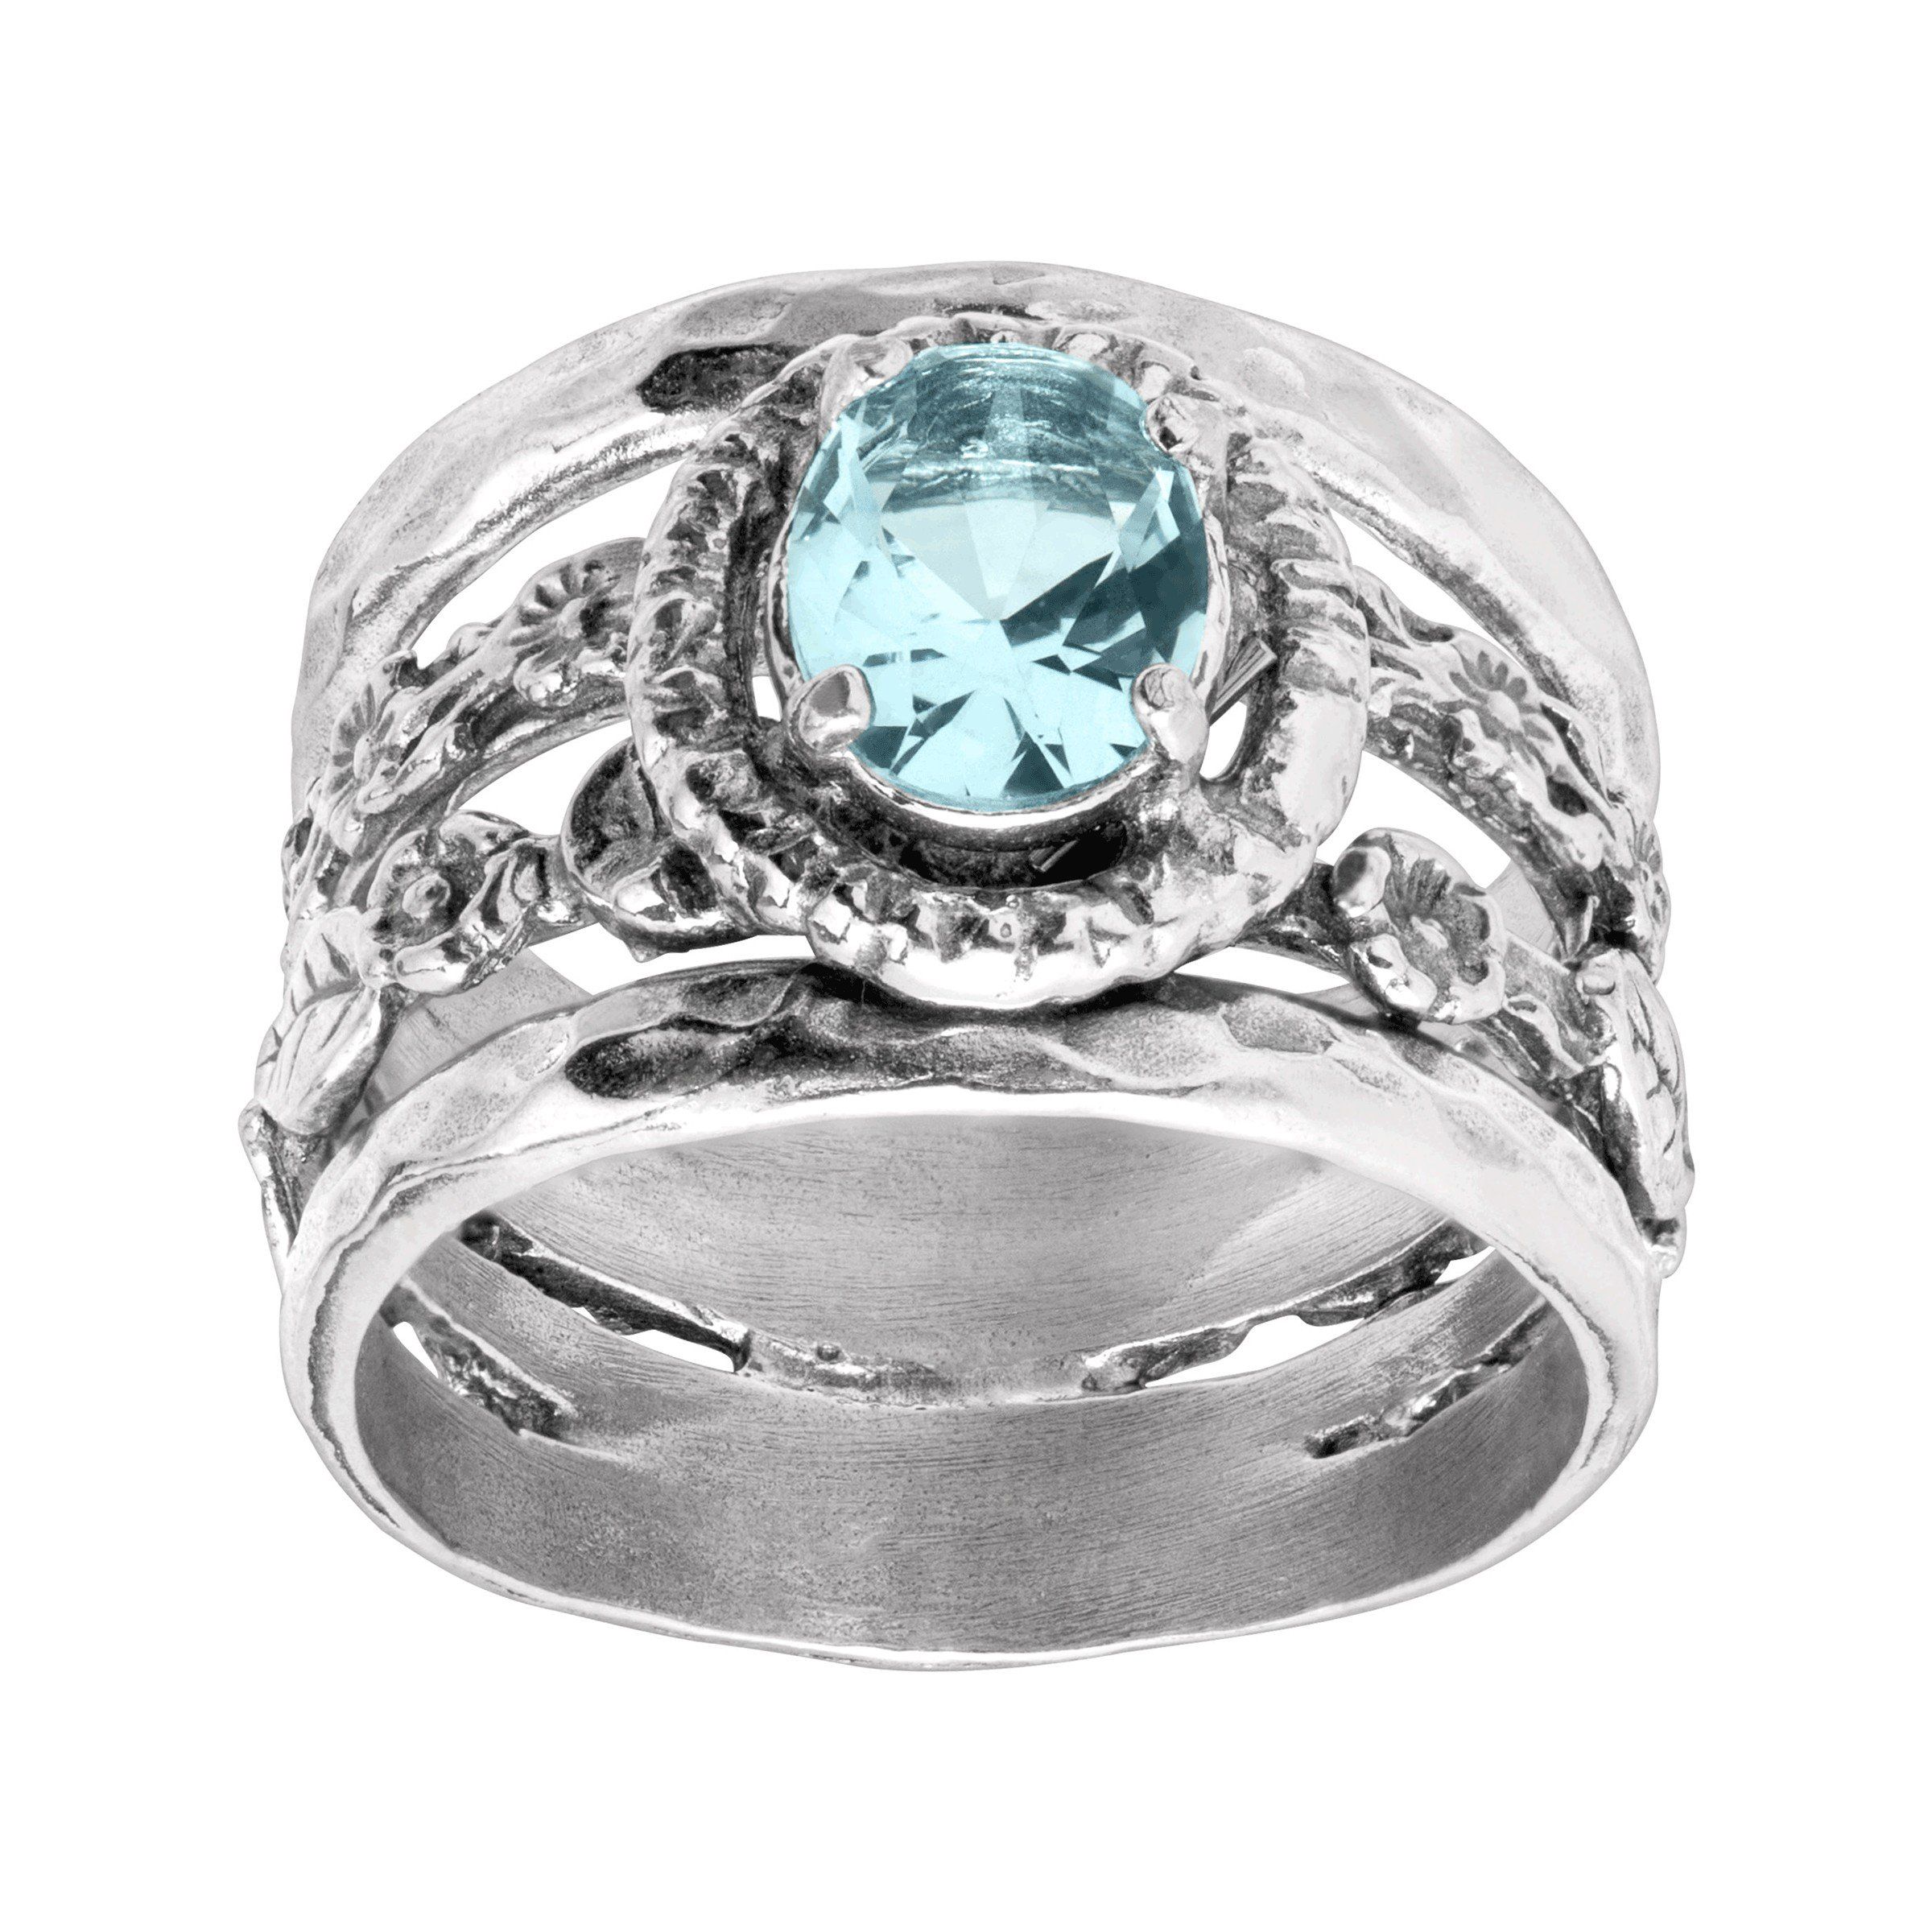 Silpada 'Best Buds' 1 1/2 ct Blue Cubic Zirconia Ring in Sterling Silver